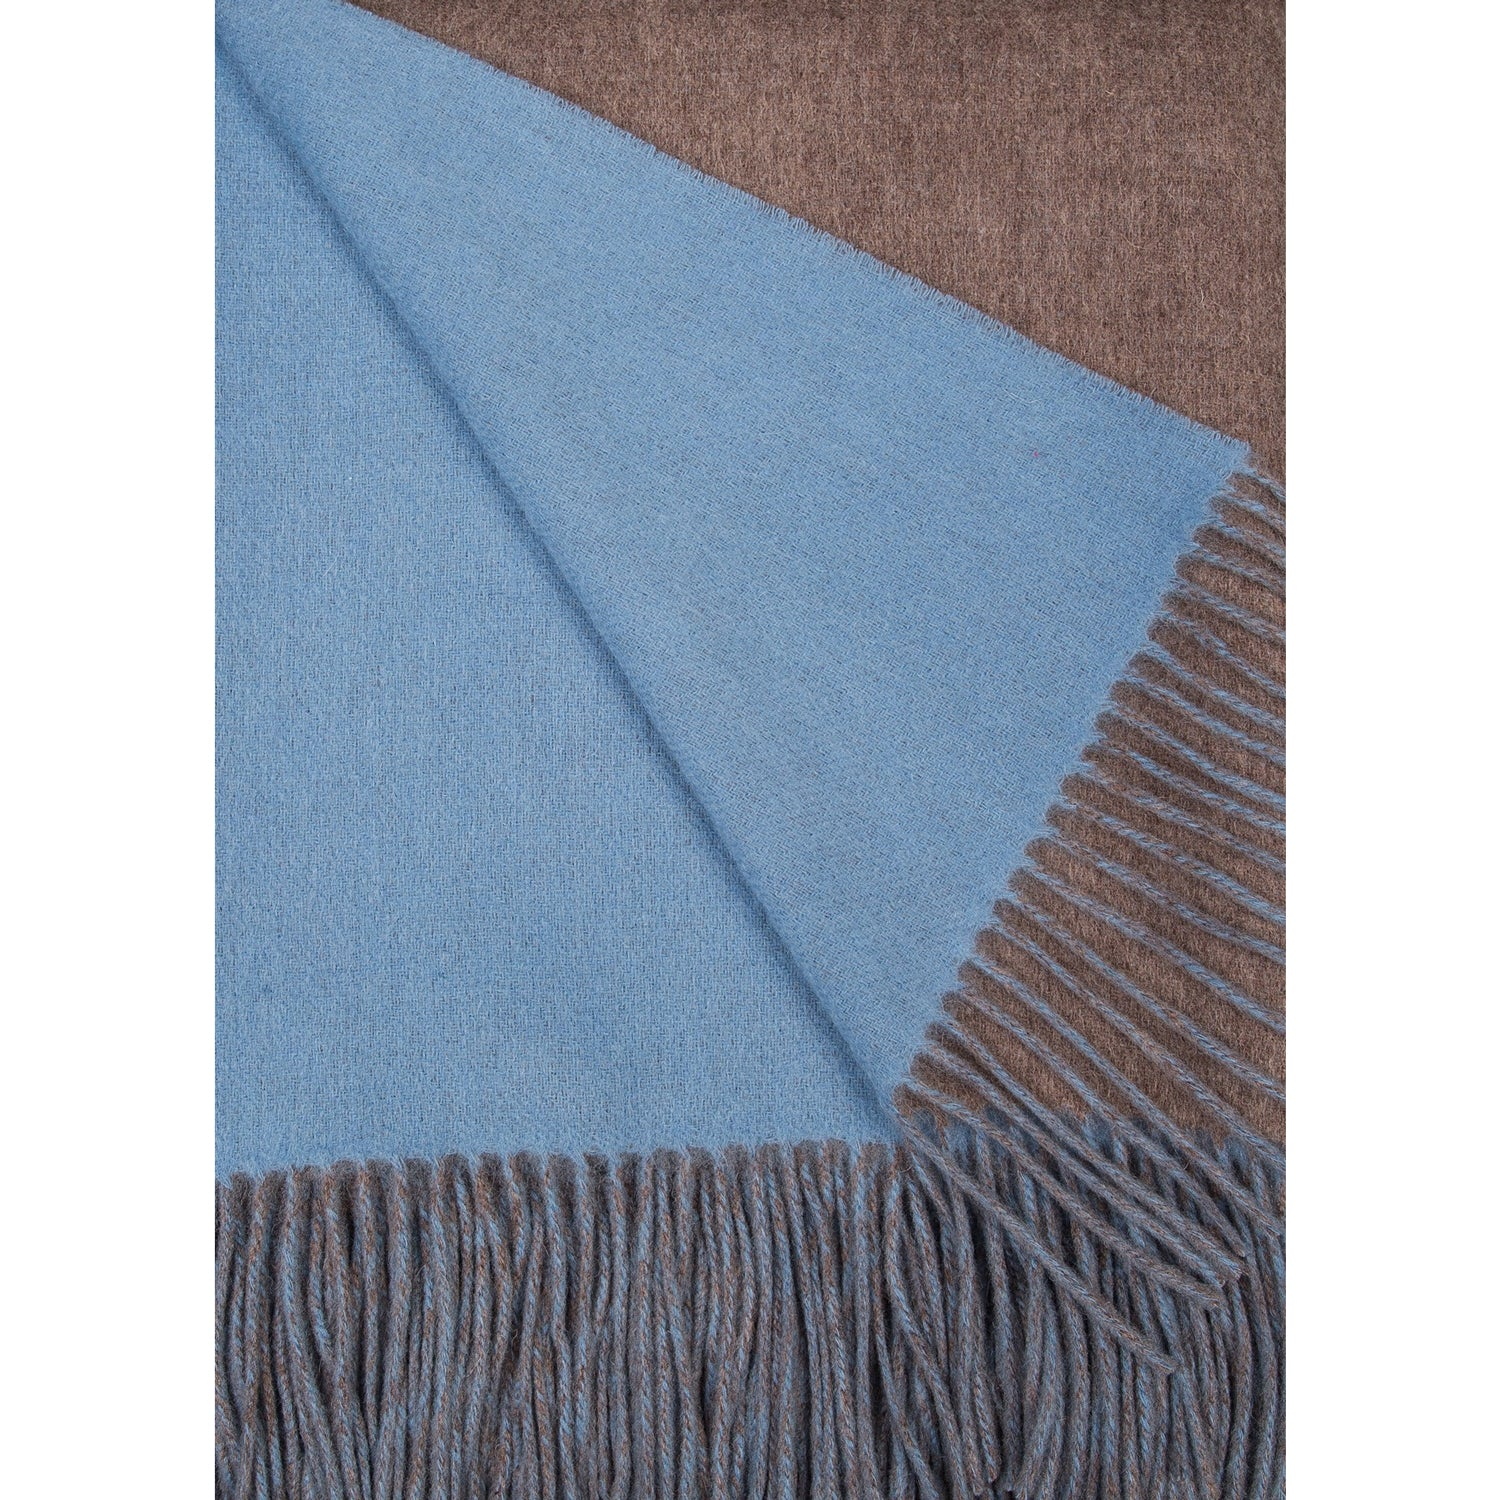 Alashan Merino / Cashmere Double Faced Throw - Mushroom/Blueskies